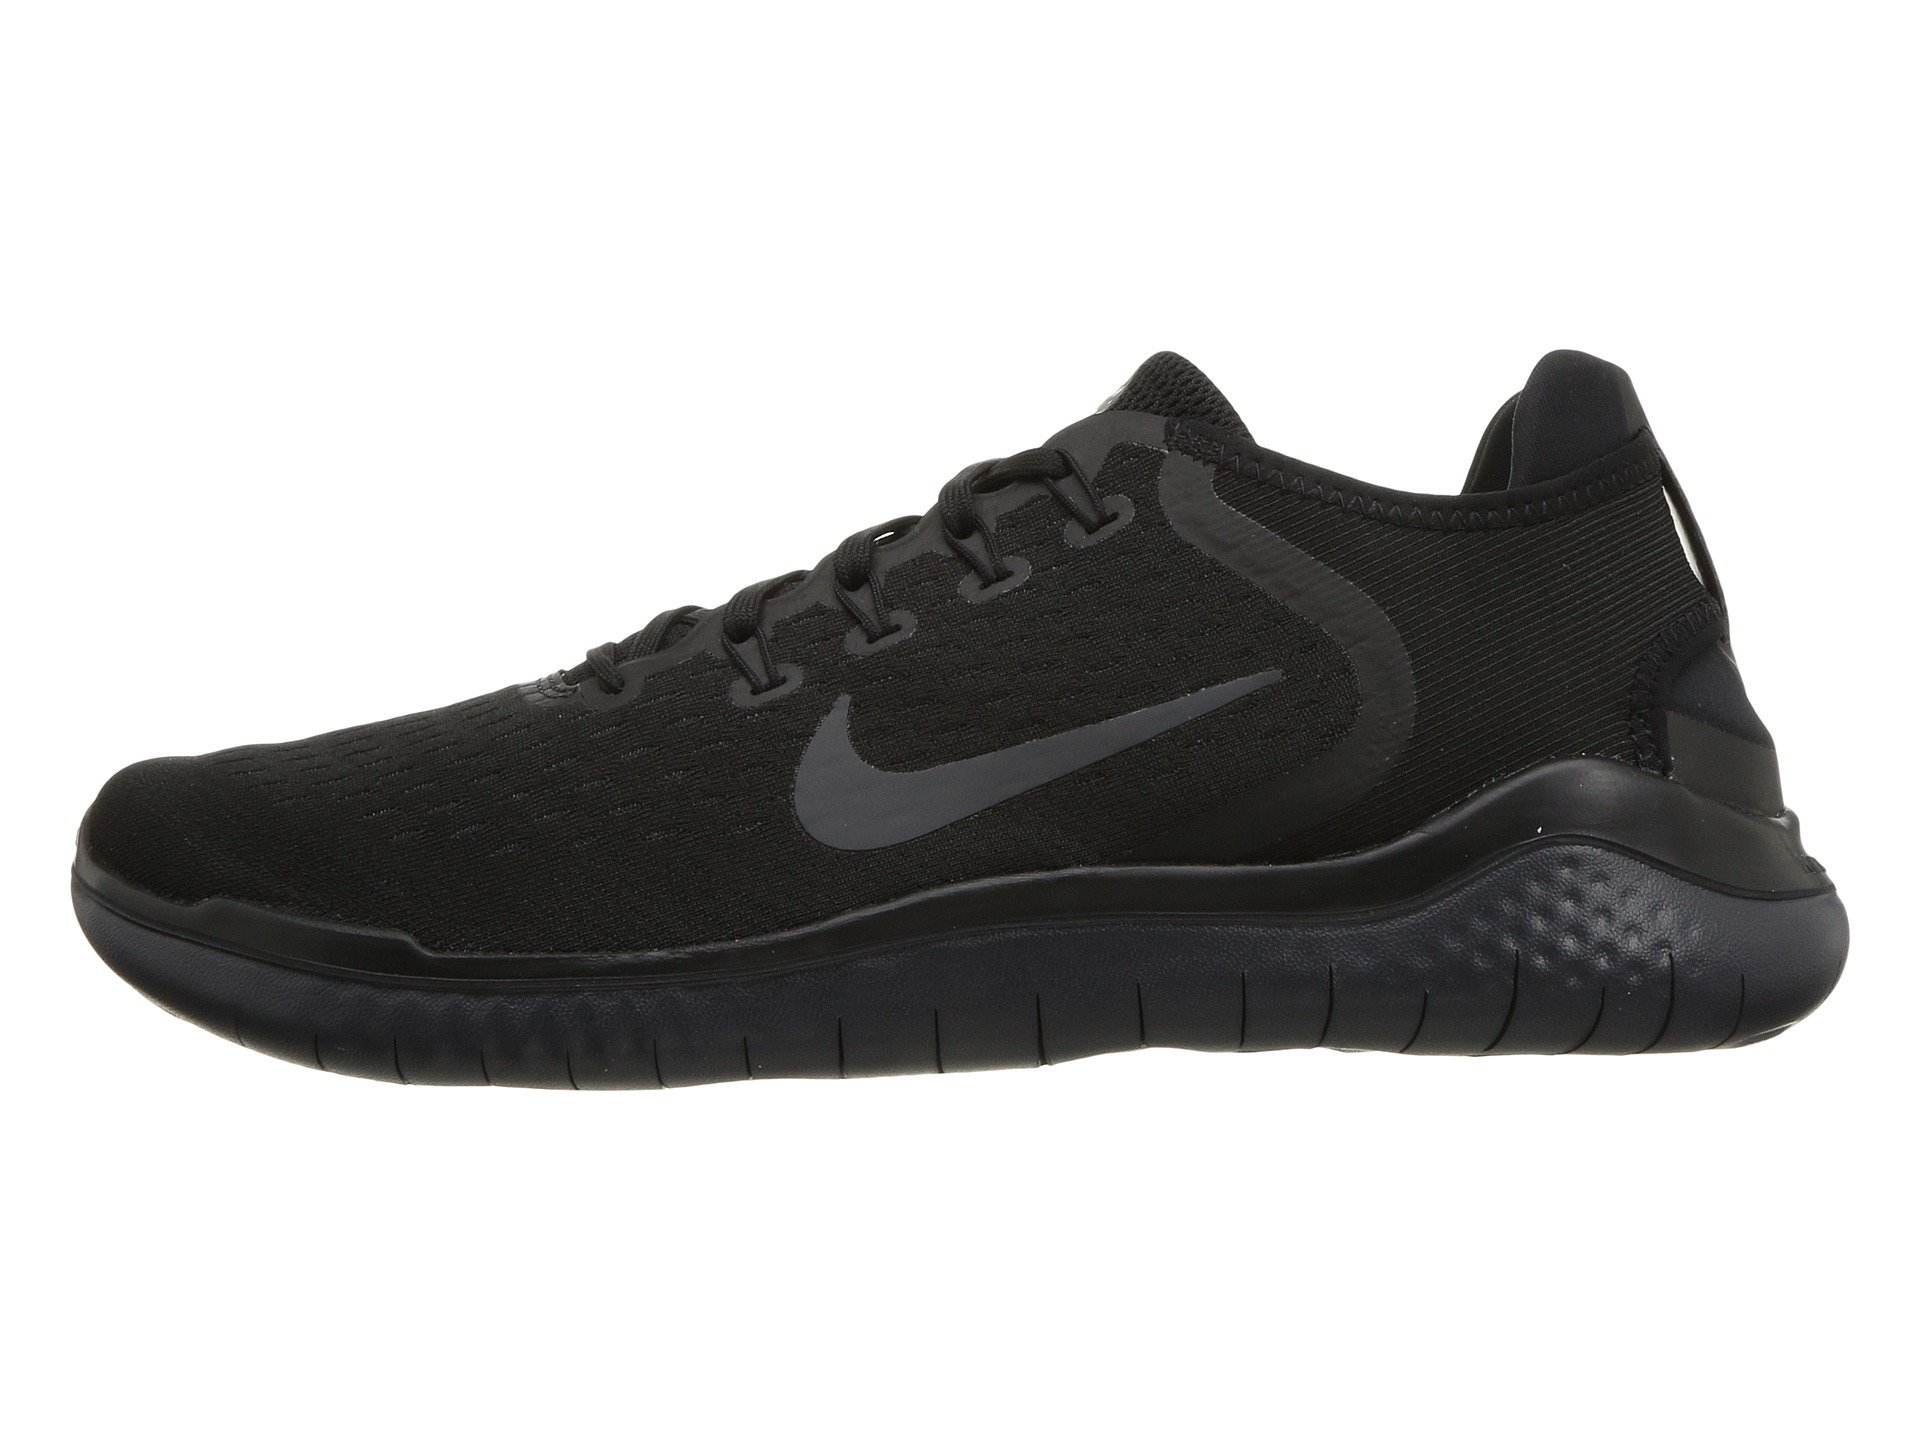 6777e50d8f22 Galleon - NIKE Mens Free RN 2018 Running Sneakers Black Anthracite 942836-002  (11 D(M) US)